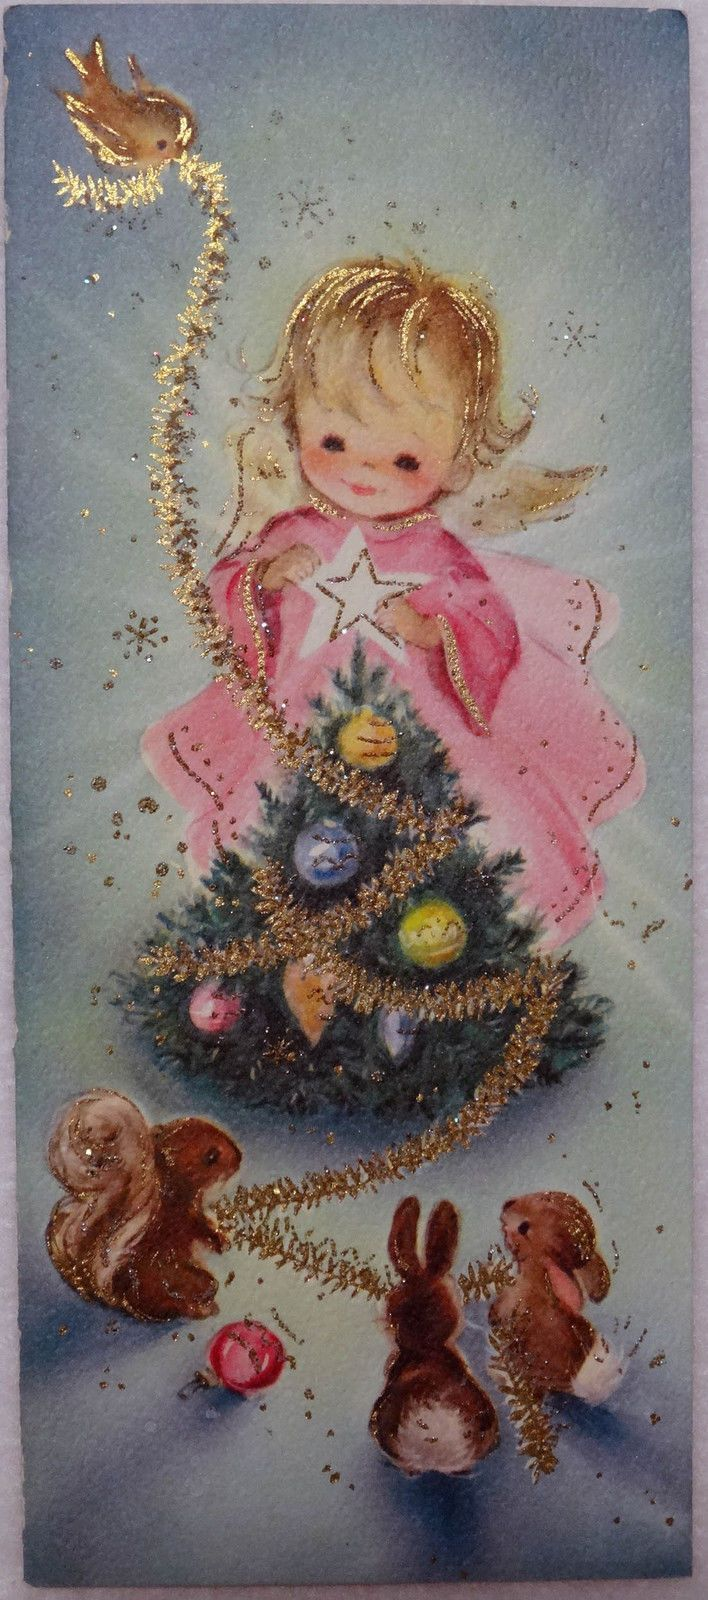 Vintage Christmas Card. Cards back then were so simple and pretty.